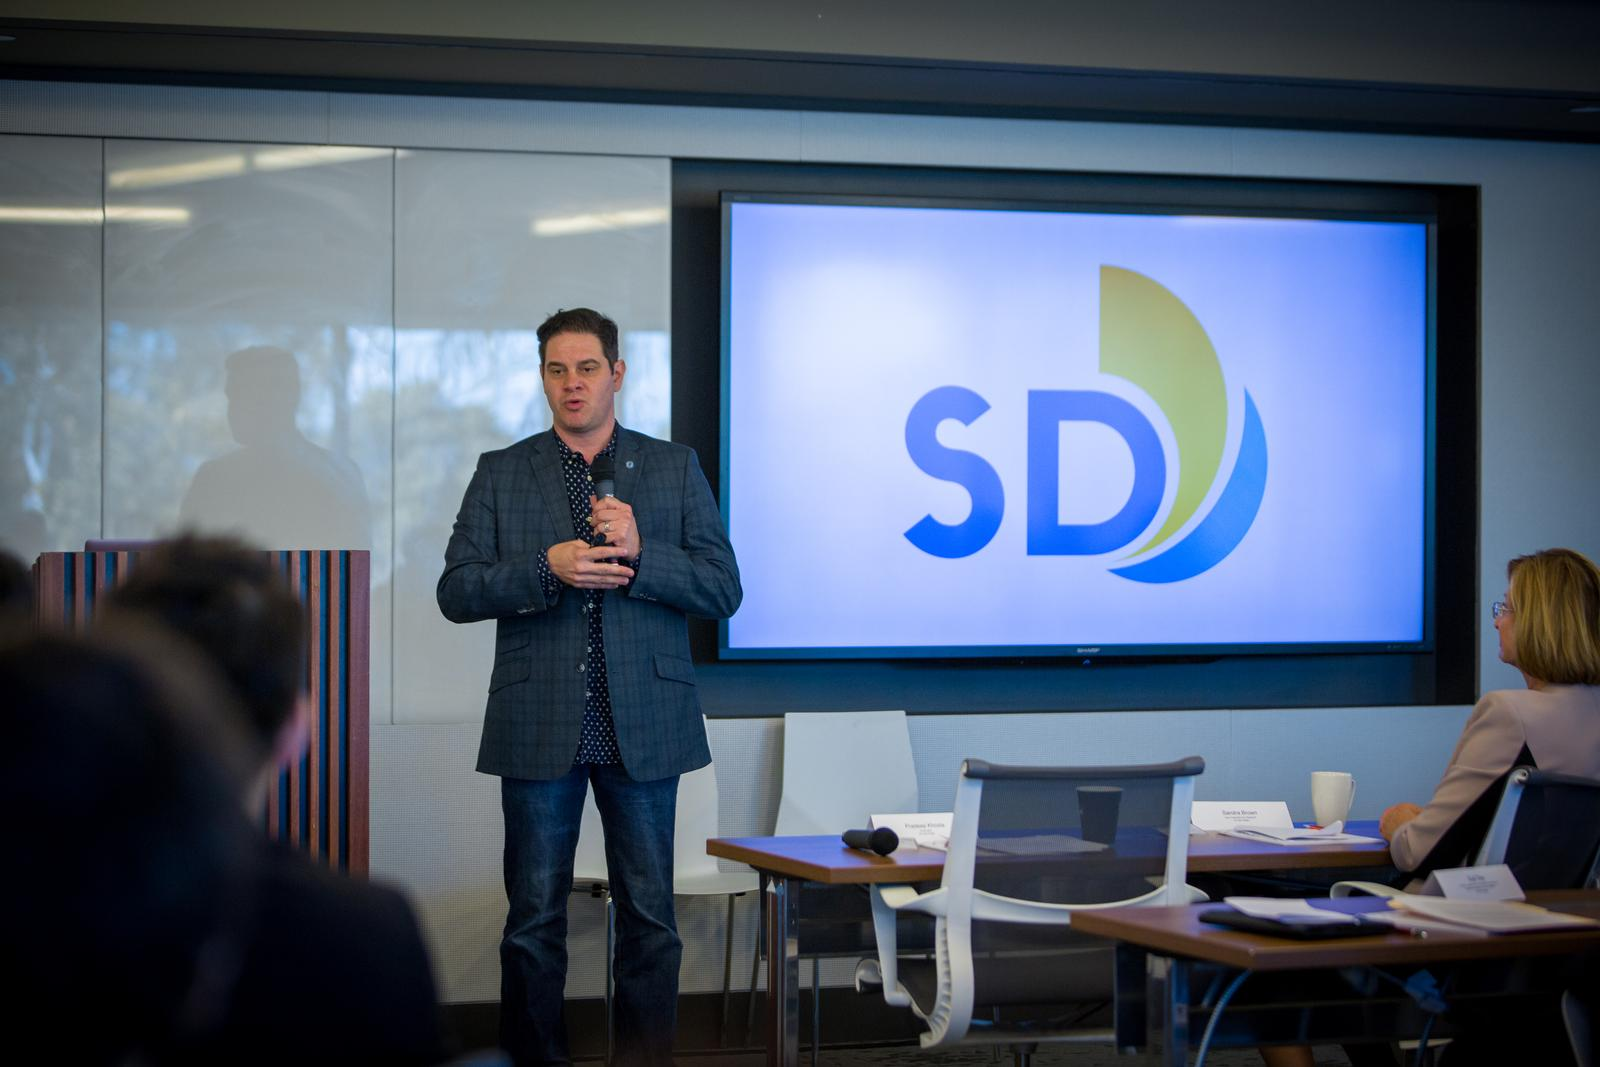 David Graham, deputy chief operating officer for the City of San Diego, said the City plans to serve as a laboratory for smart transportation innovations. Photo credit Shanni Jin/ Calit2